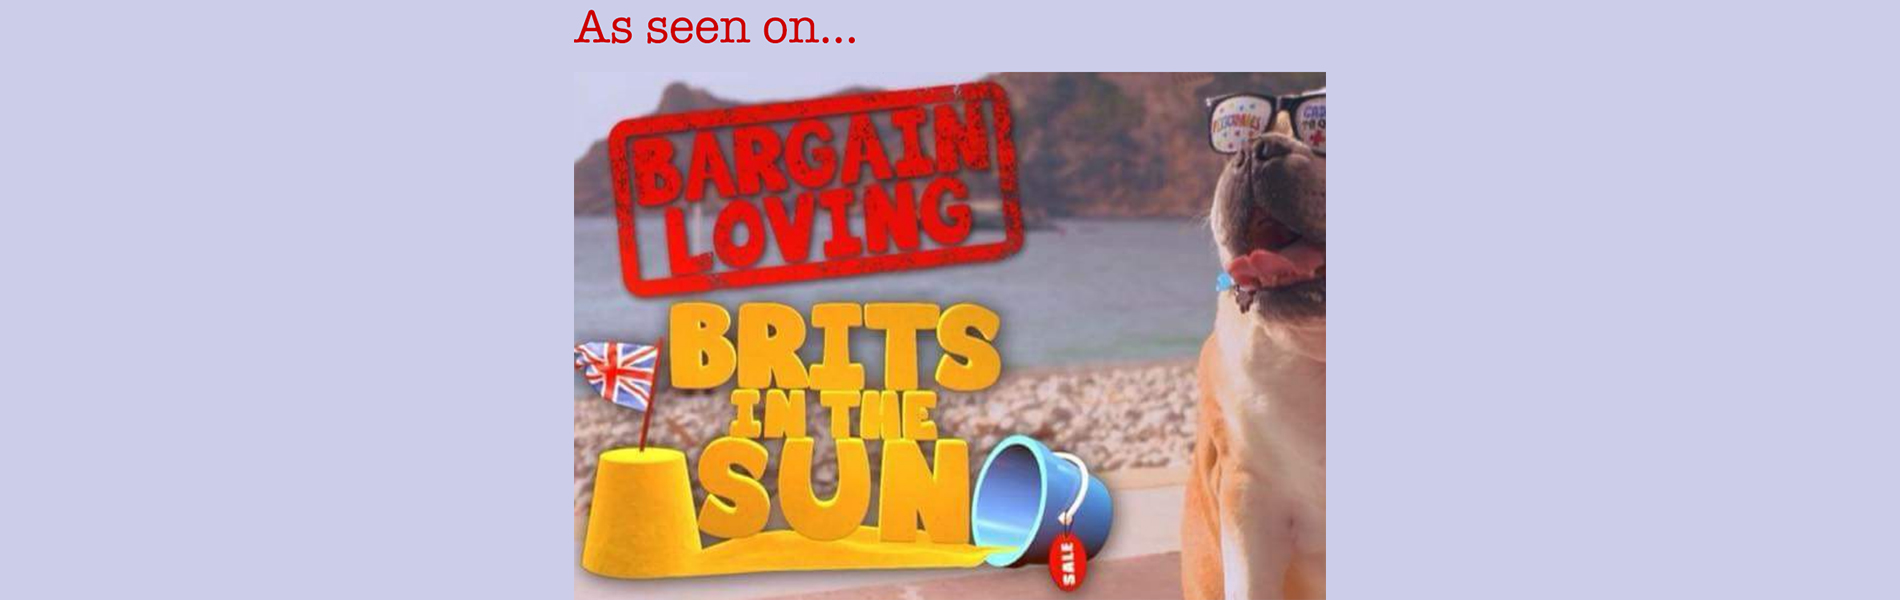 As seen on Bargain Loving Brits in the Sun